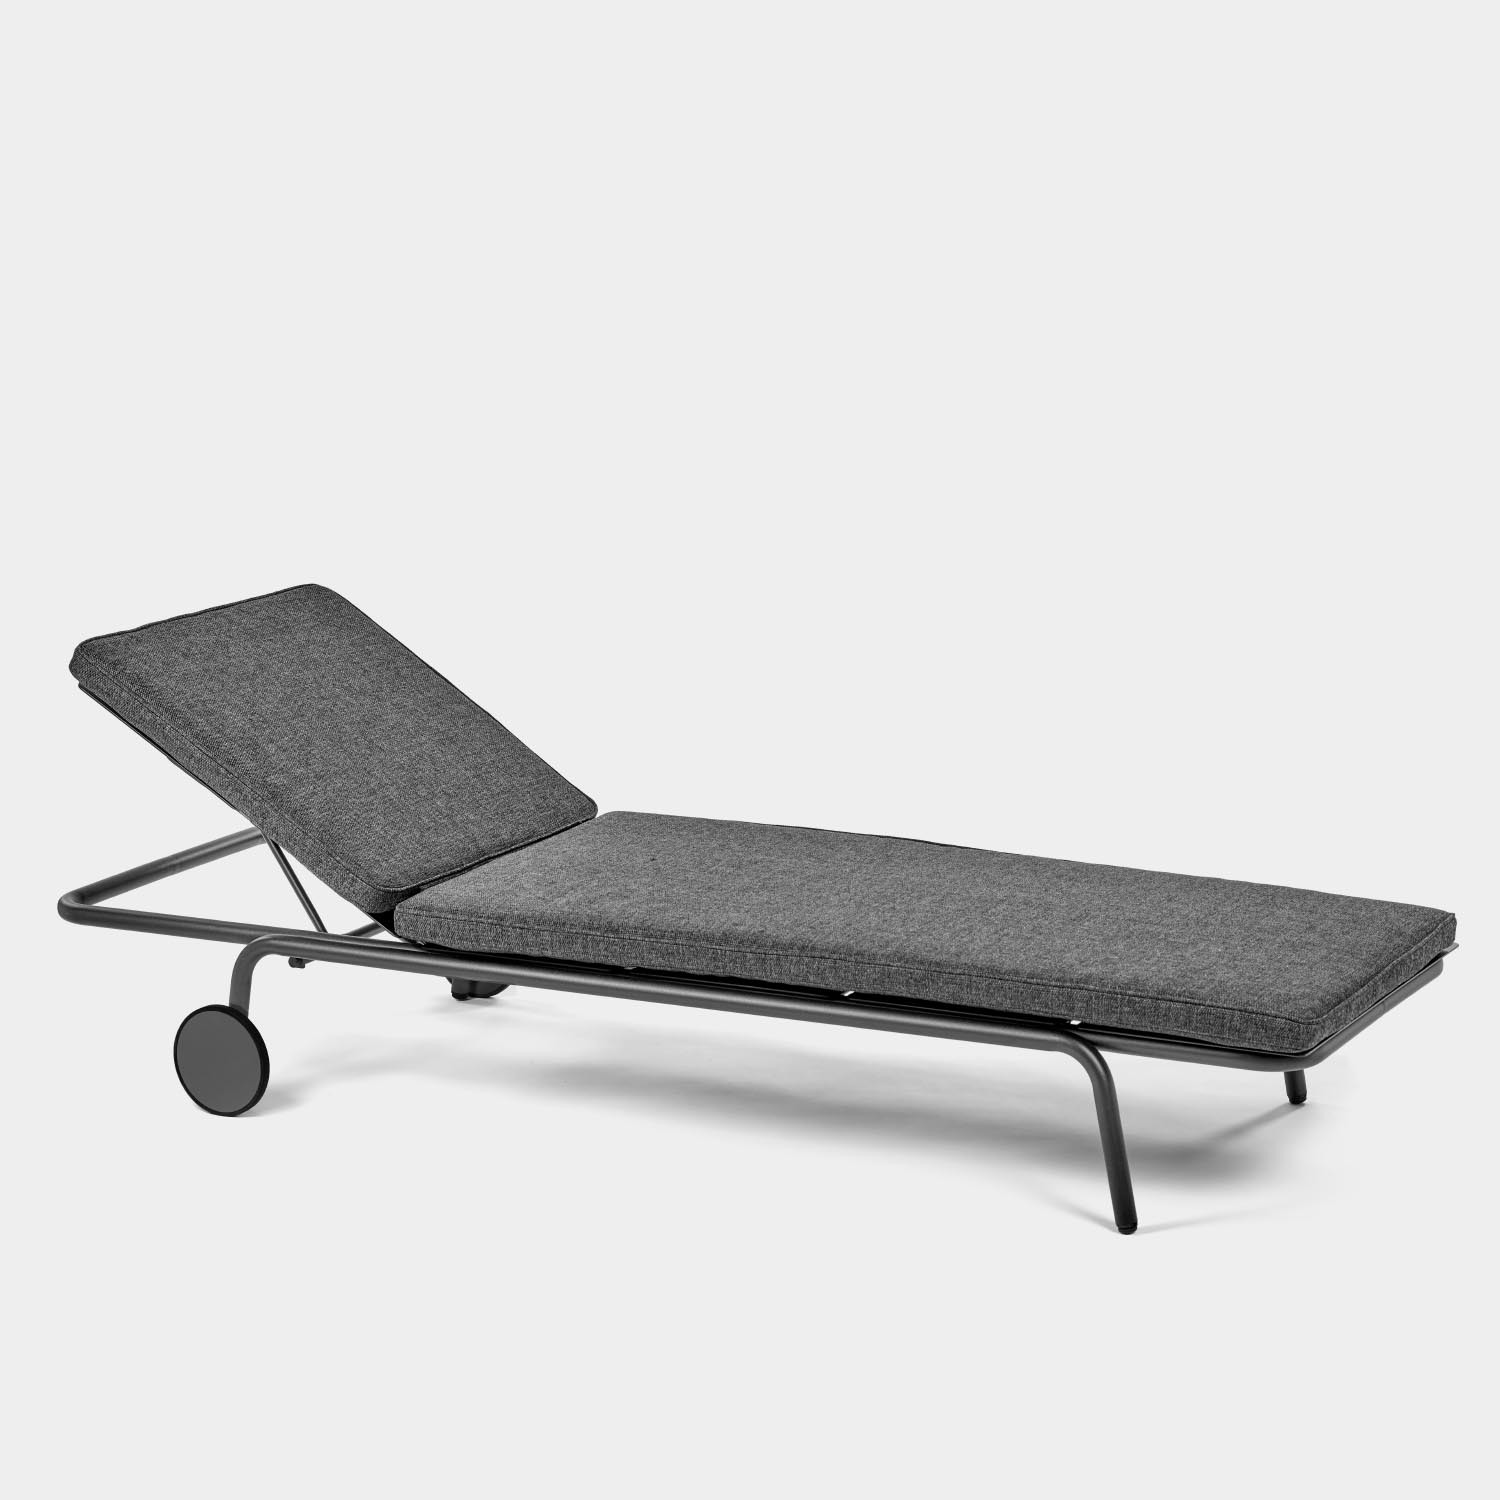 August Sunlounger, Black, with Cushion